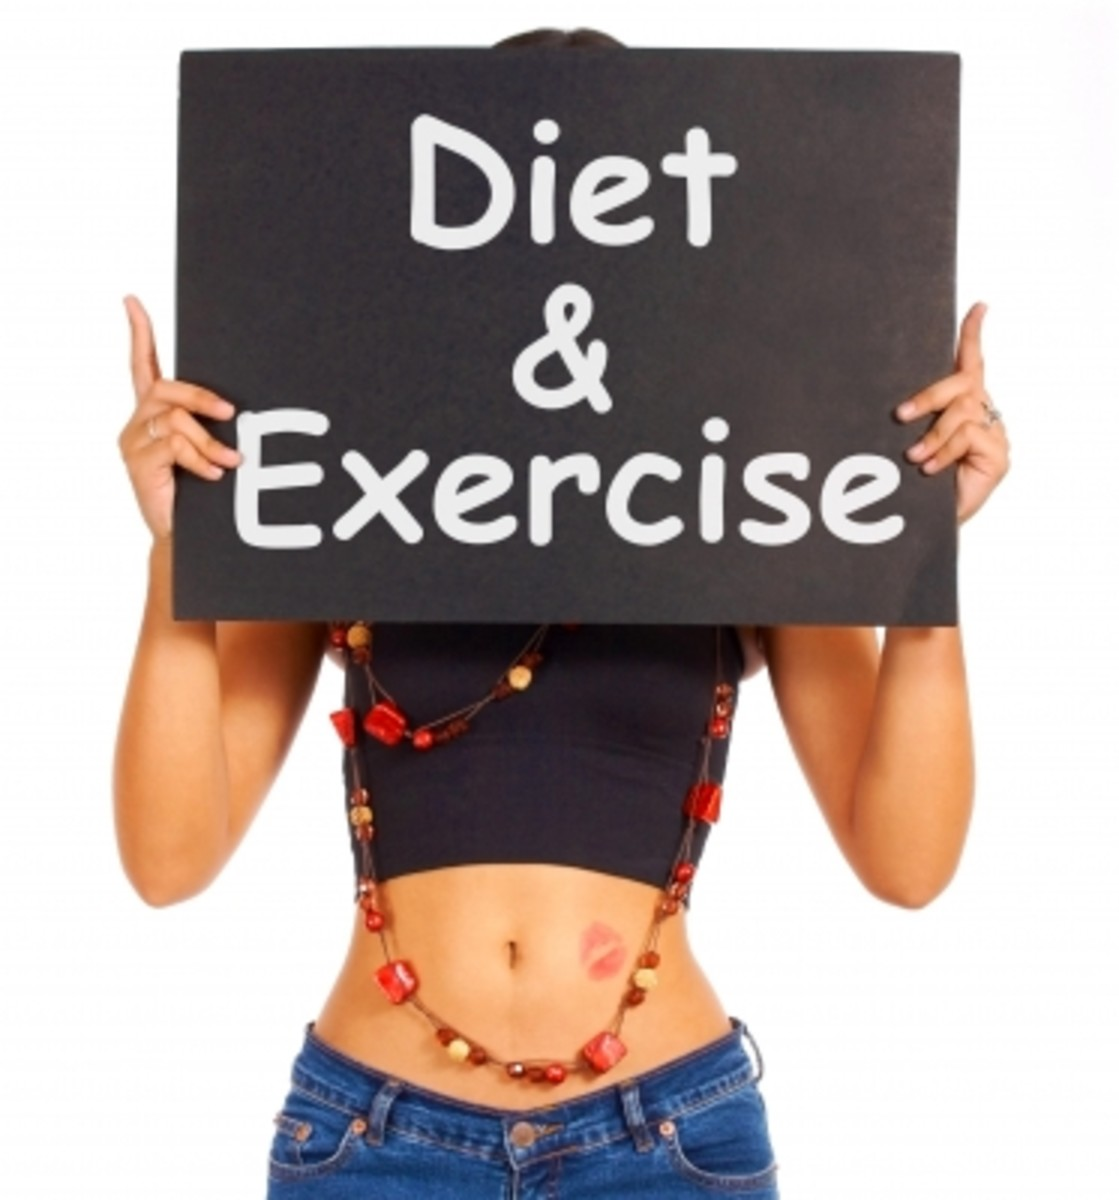 You certainly want to avoid diet and exercise if your goal is to be unattractive. With a healthy body it will be nearly impossible for people to see you as good looking.